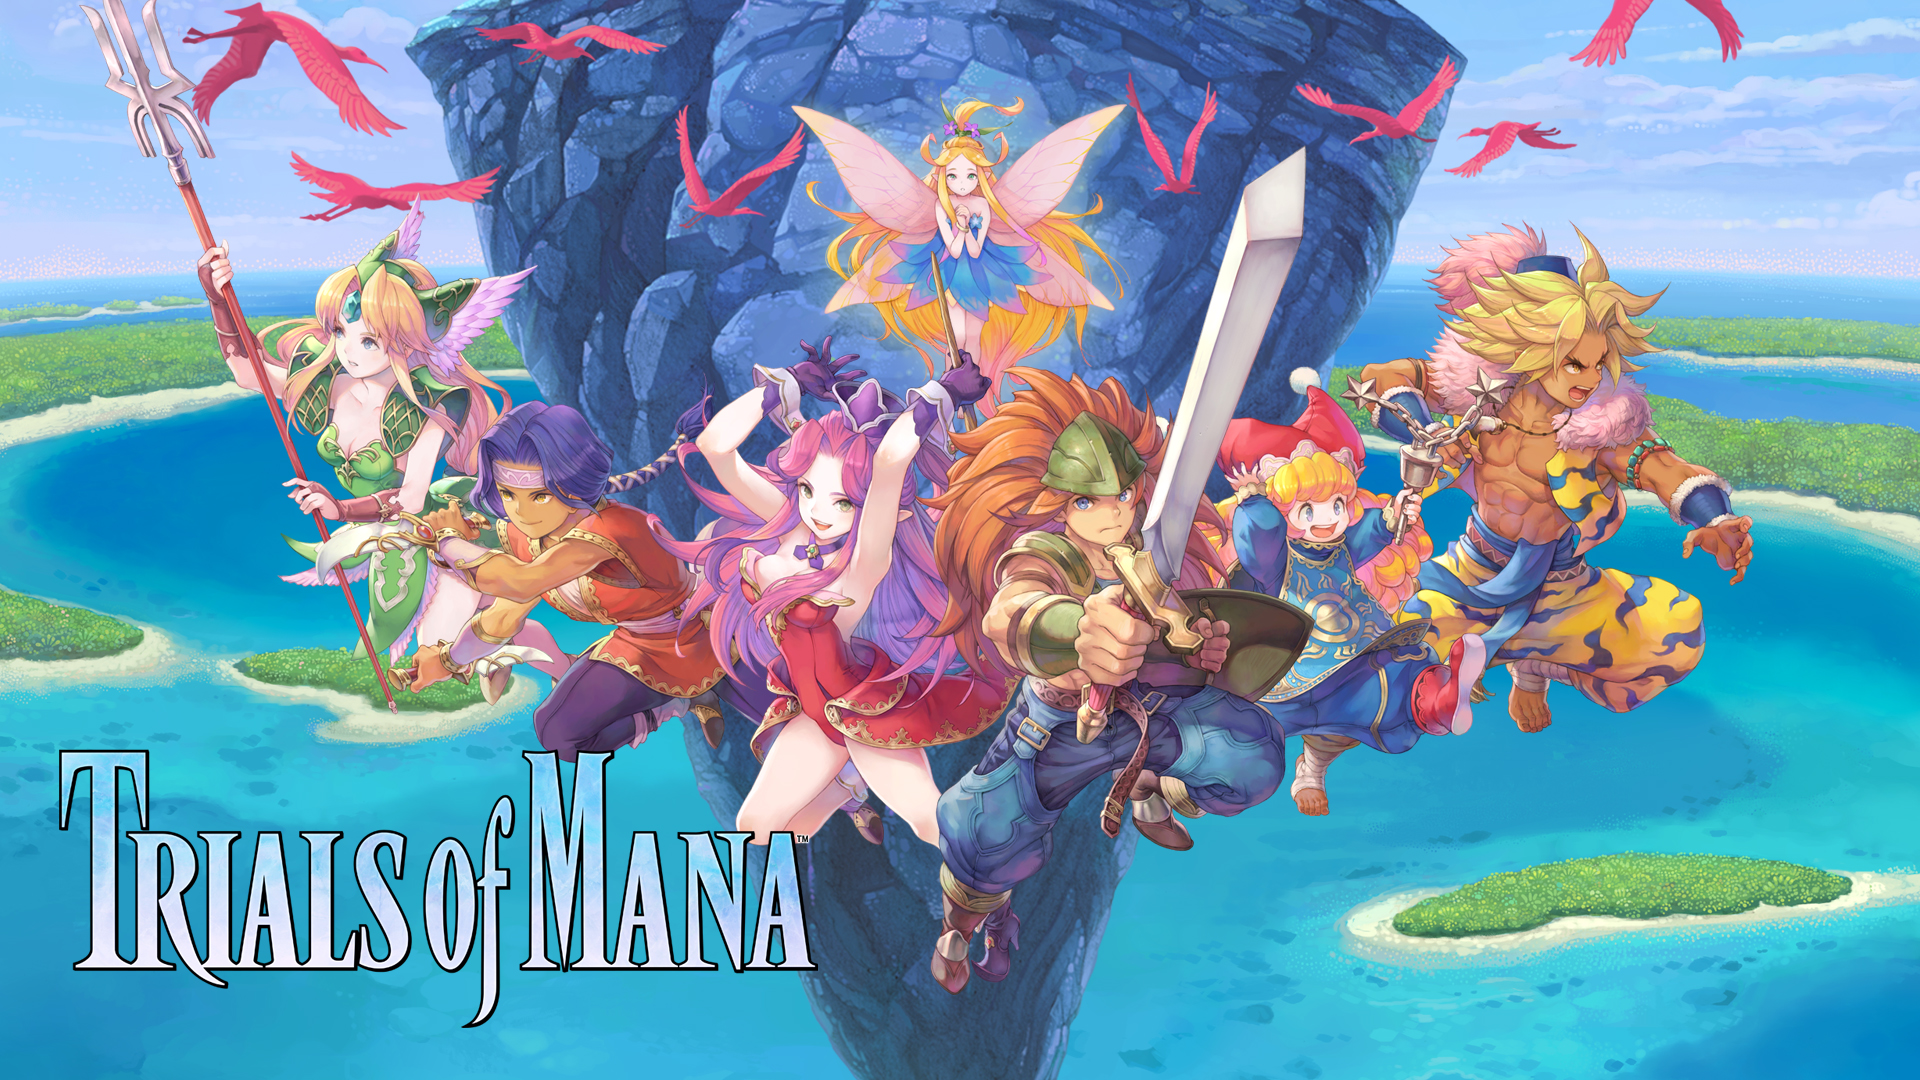 Trials of Mana coming to both Android and iOS on July